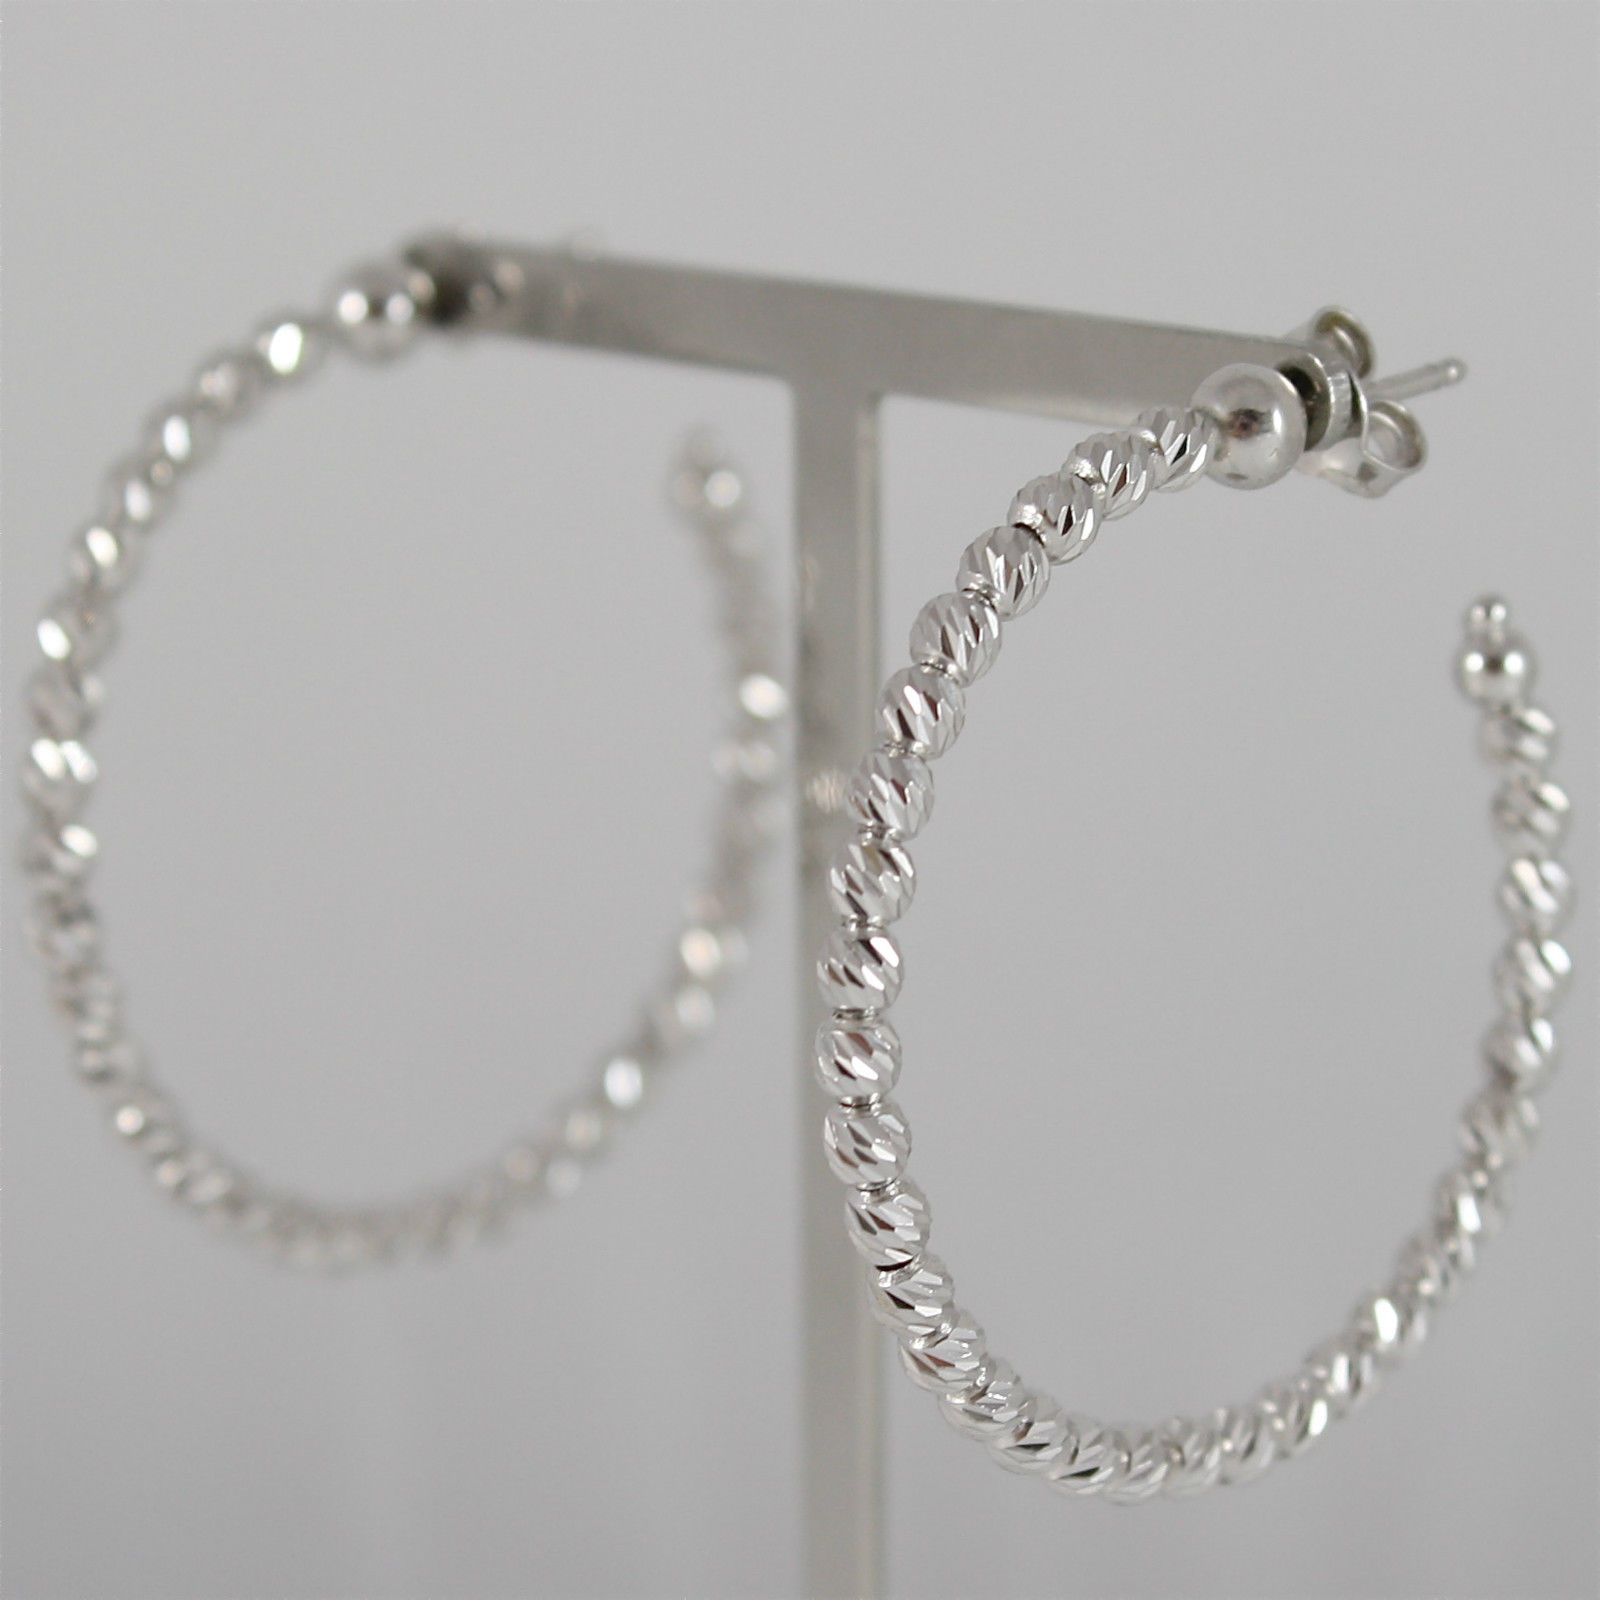 925 RODIUM SILVER OFFICINA BERNARDI EARRINGS, FACETED BALLS MADE IN ITALY 3,9 CM